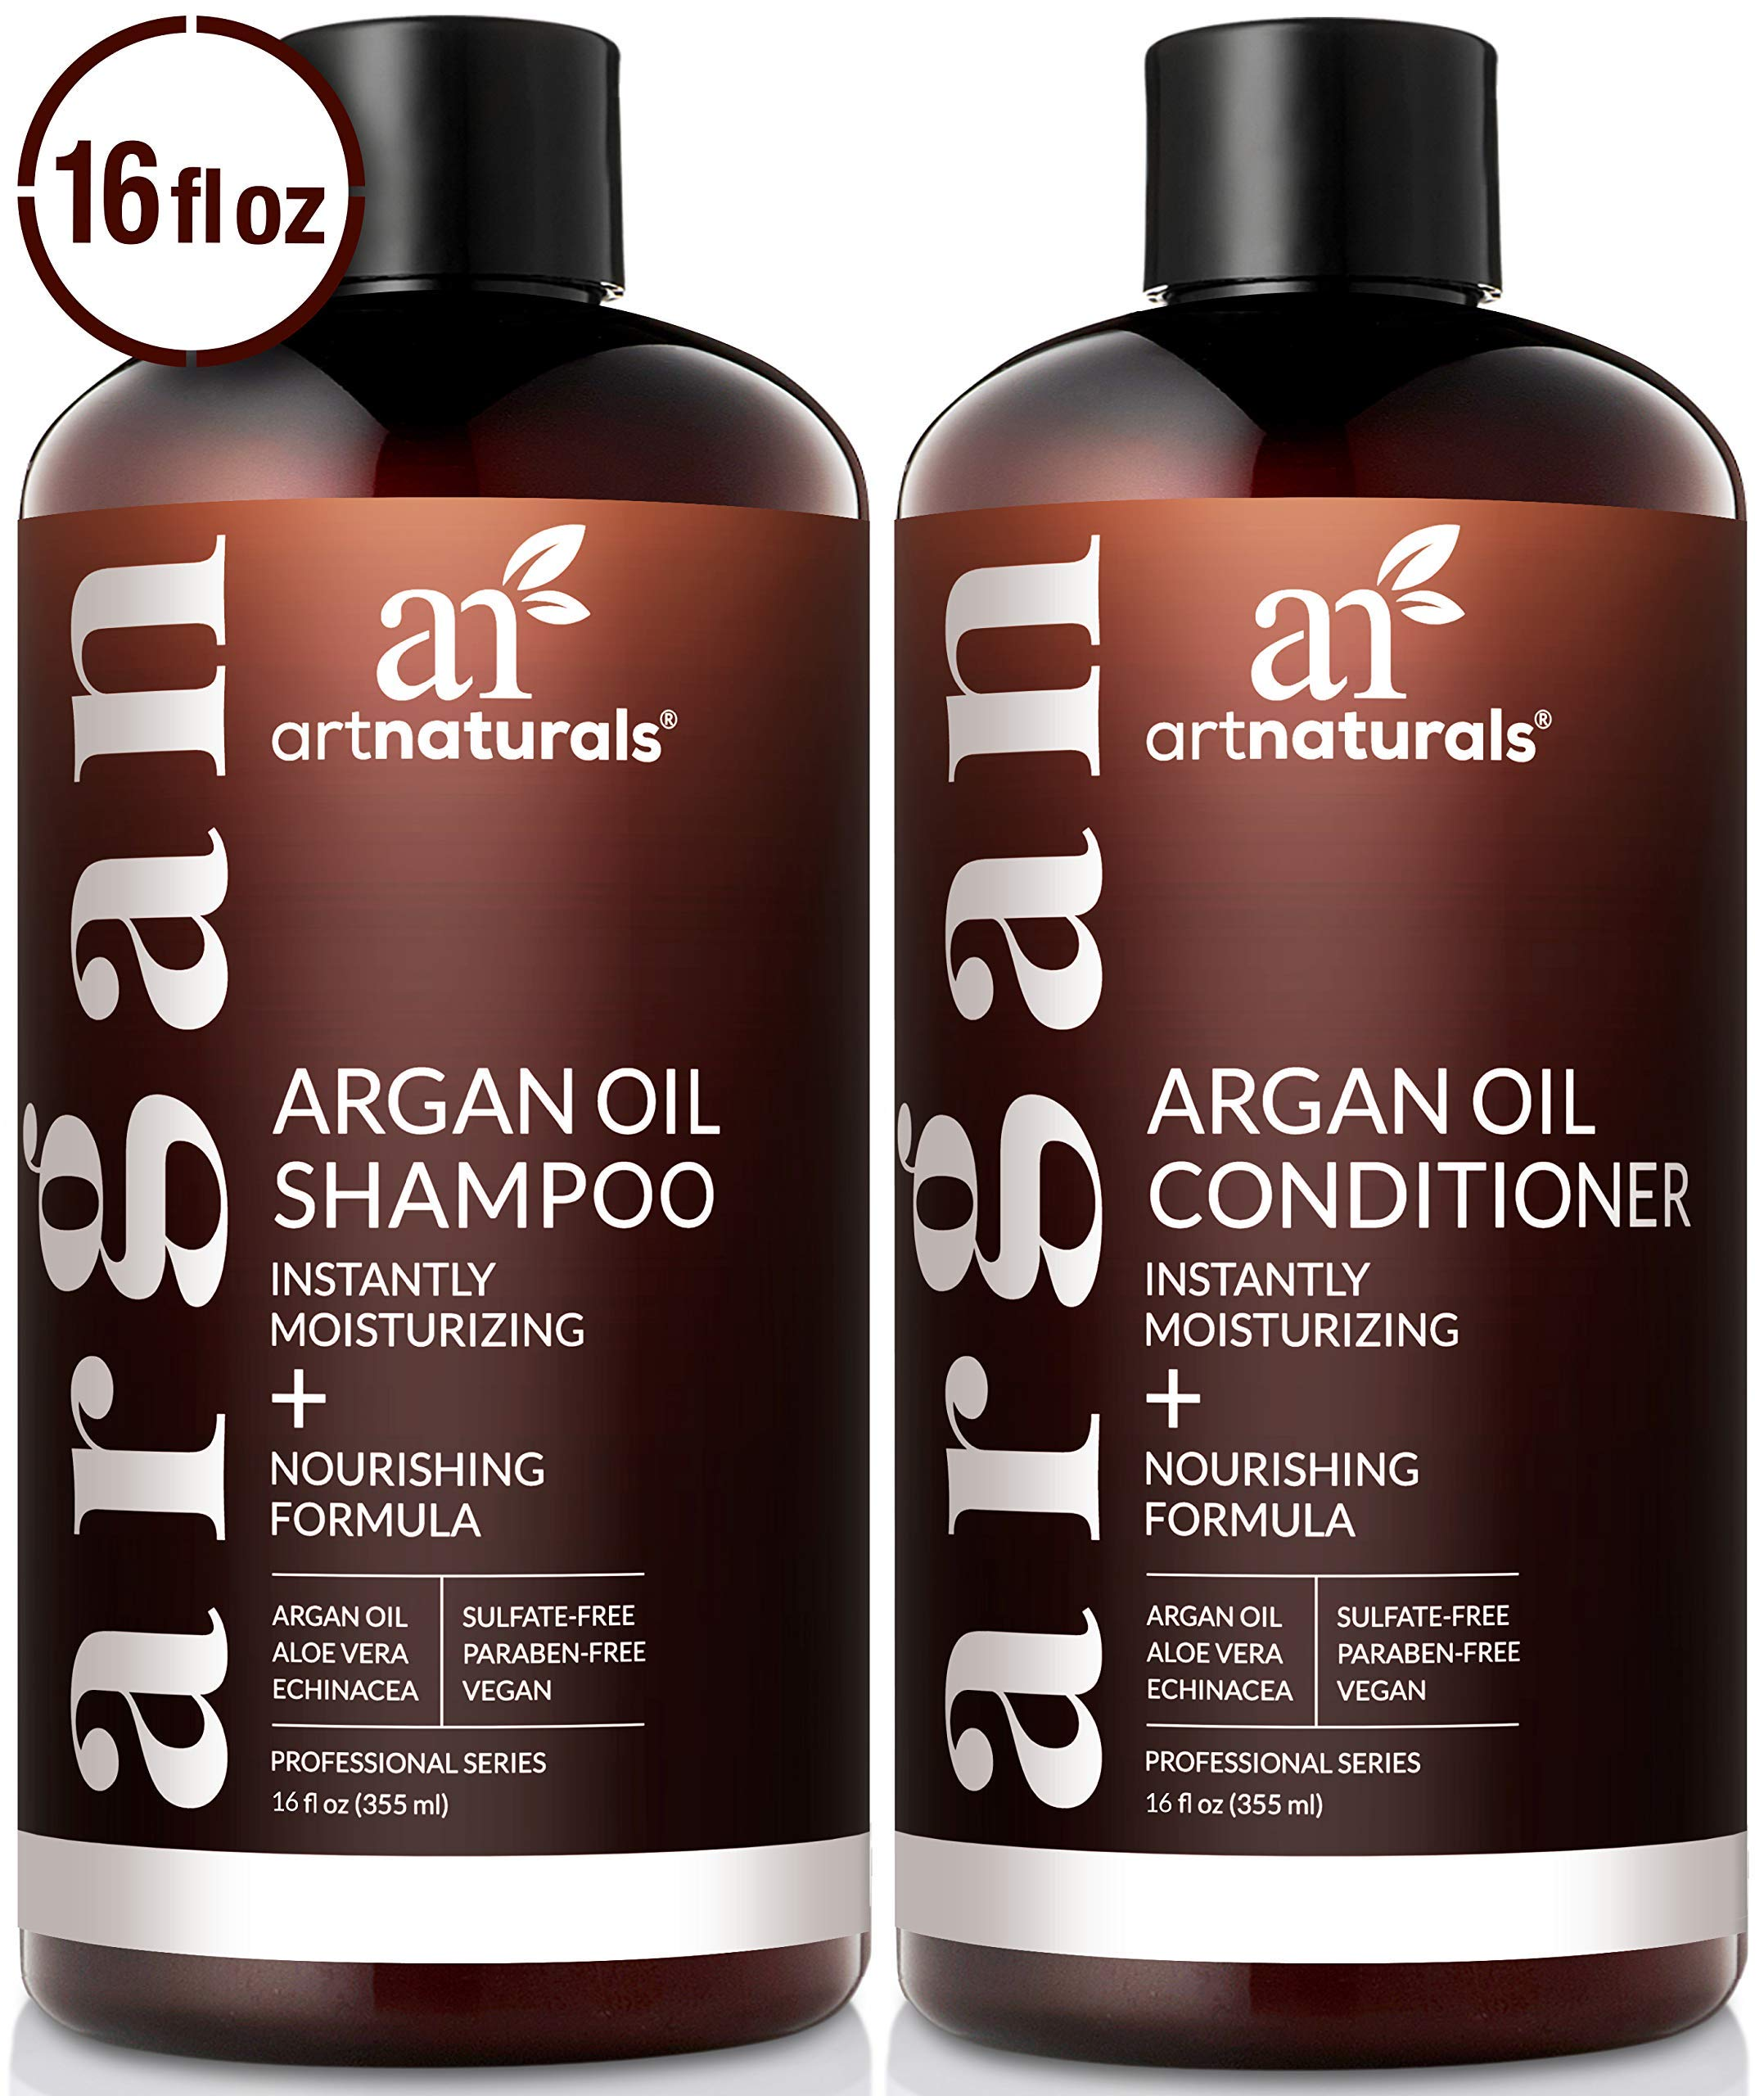 ArtNaturals Organic Moroccan Argan Oil Shampoo and Conditioner Set - (2 x 16 Fl Oz / 473ml) - Sulfate Free - Volumizing & Moisturizing - Gentle on Curly & Color Treated Hair - Infused with Keratin by ArtNaturals